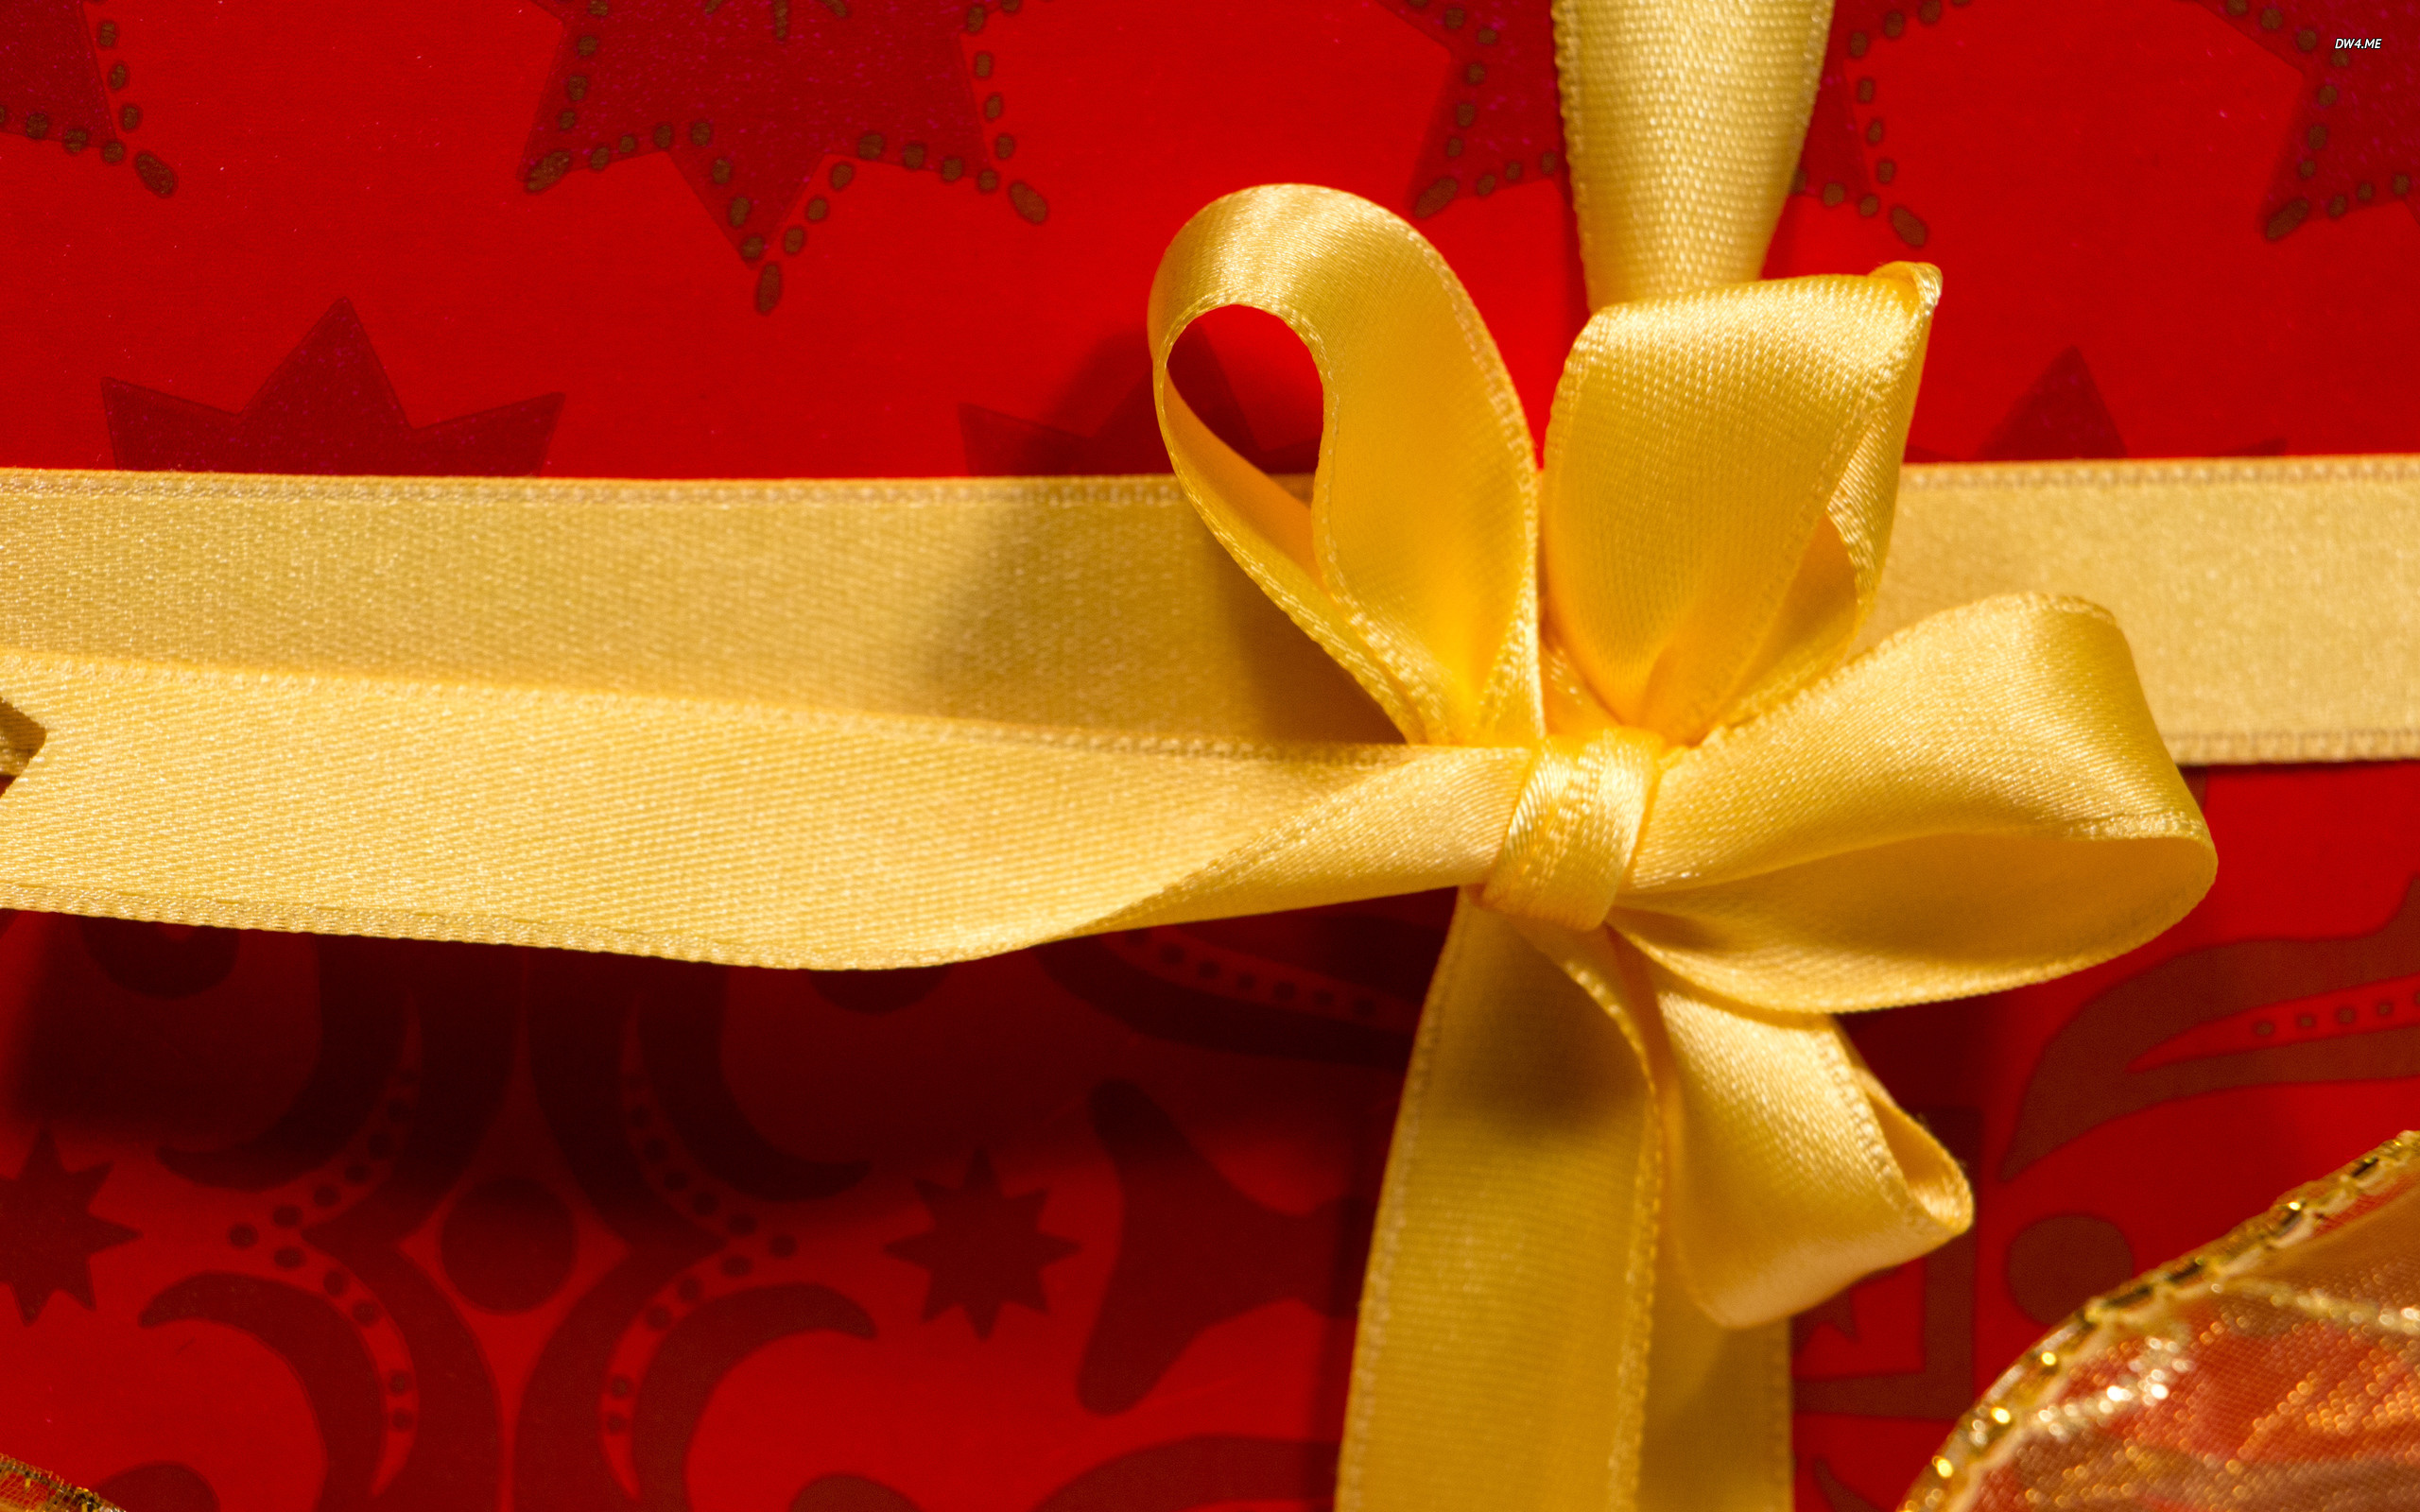 Res: 2560x1600, ... Golden bow on a red Christmas present wallpaper  ...